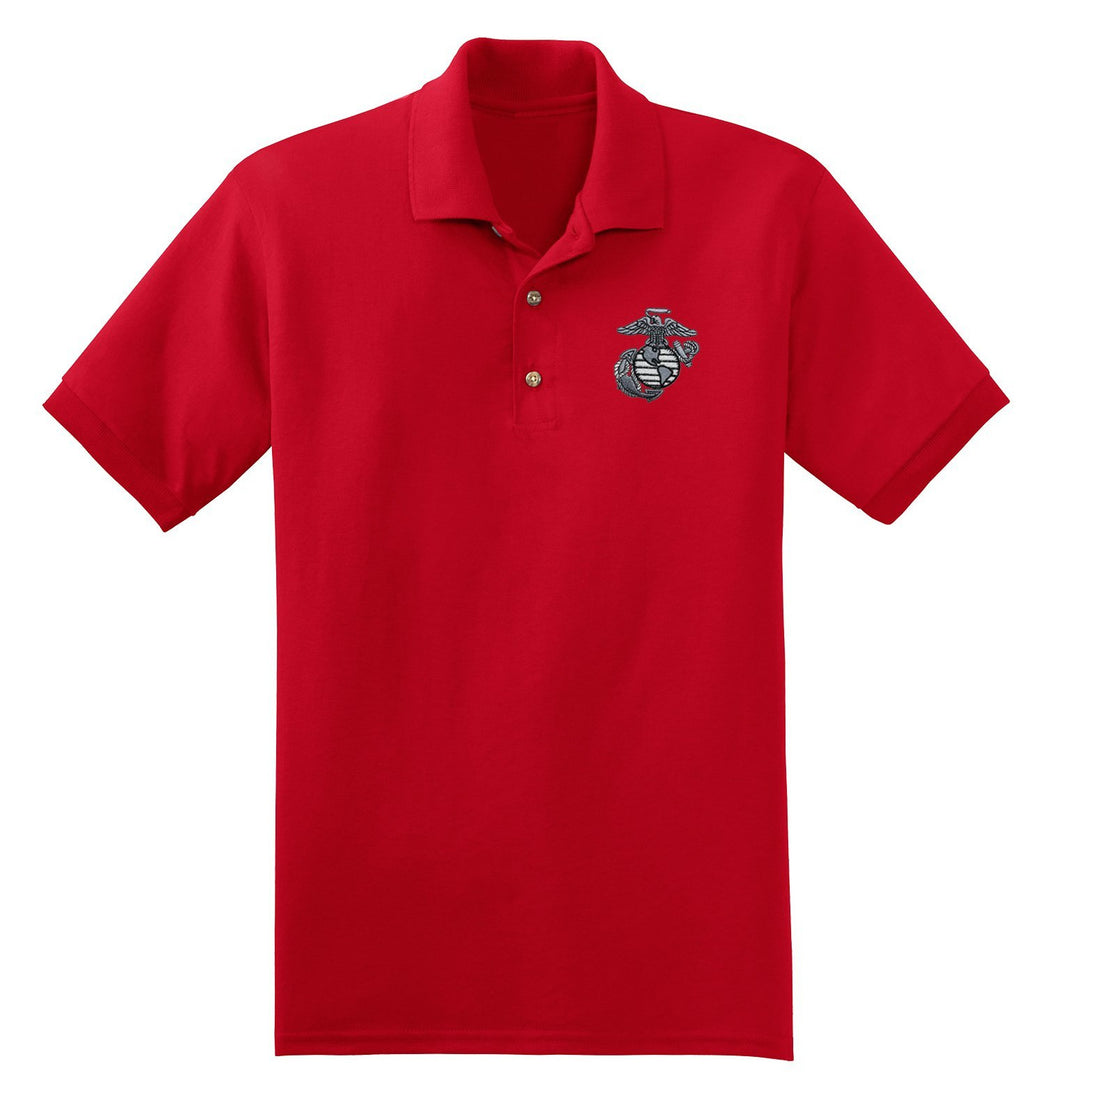 Front view of the red USMC polo shirt at Marine Corps Direct with the eagle, globe, and anchor embroidered on the top left corner.